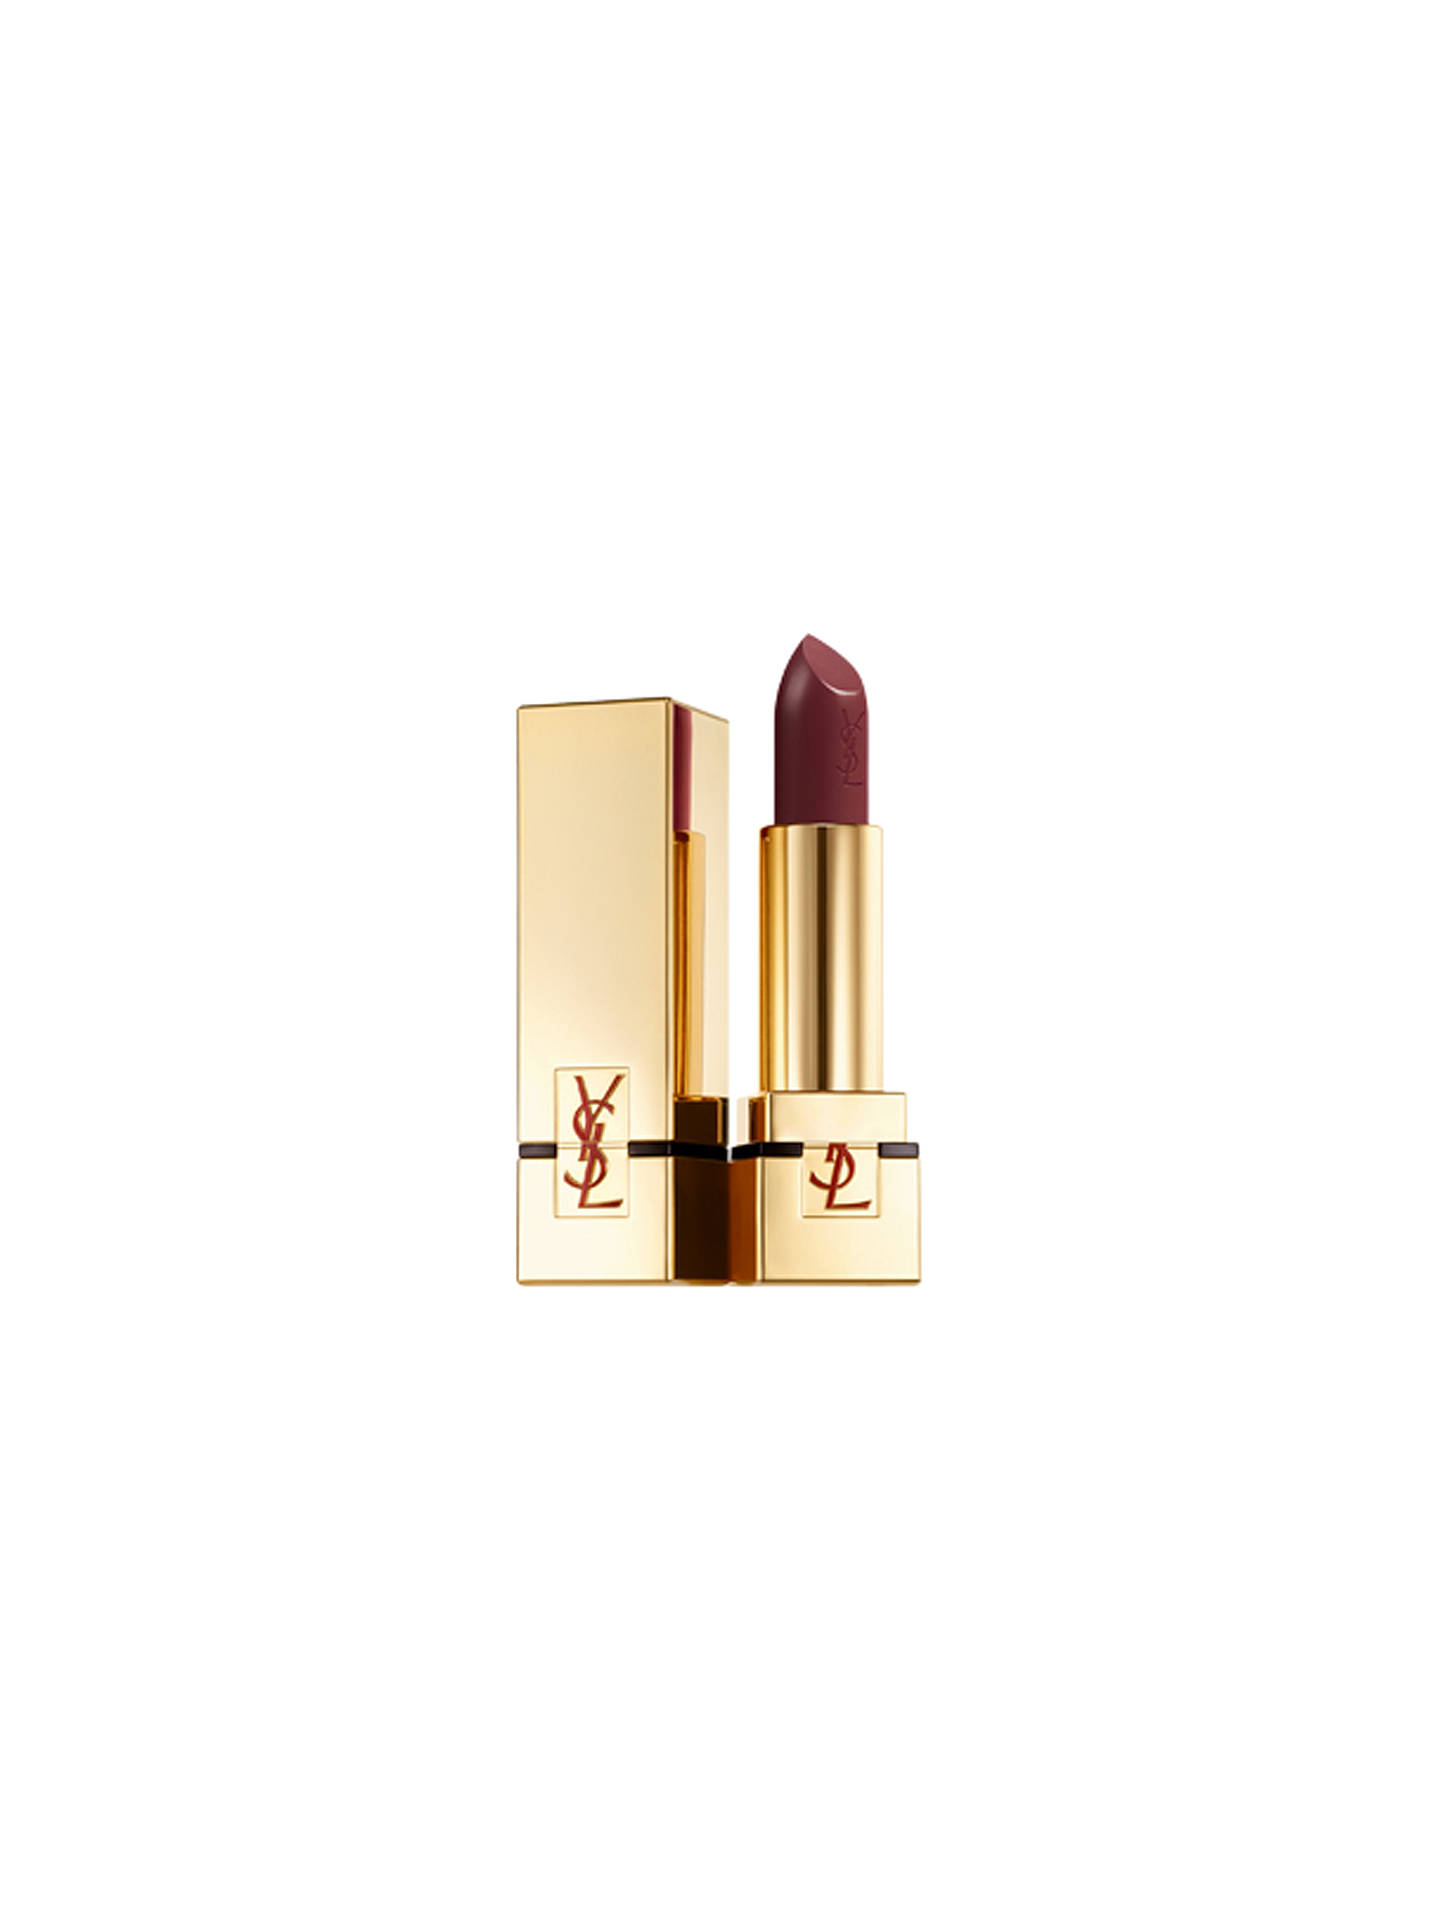 BuyYves Saint Laurent Rouge Pur Couture Lipstick, 54 Prune Avenue Online at johnlewis.com